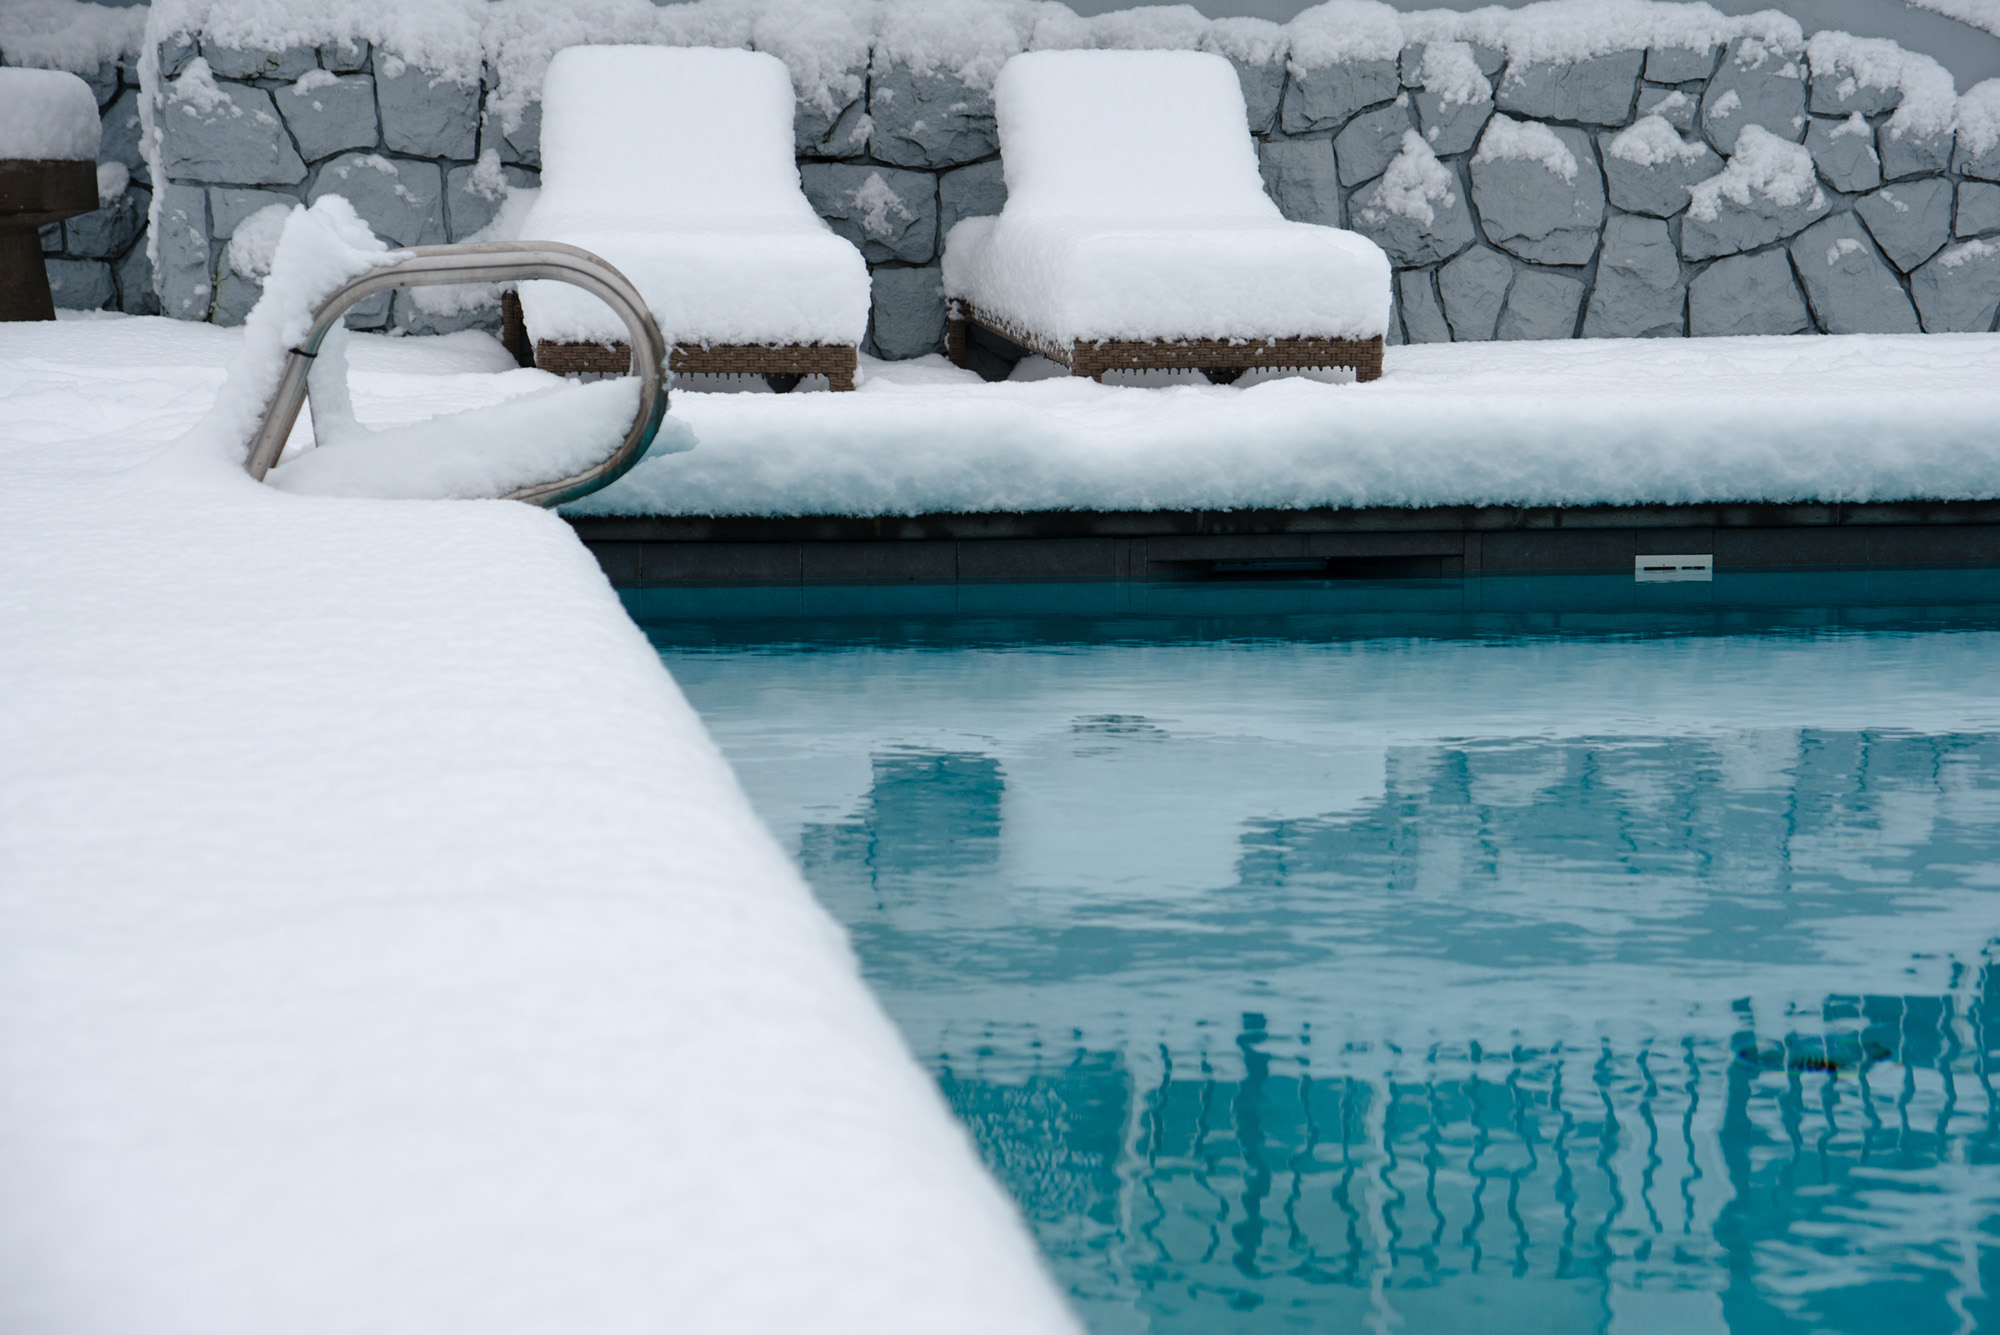 It S Winter Take Advantage Of Our Maintenance Packages To Keep Your Installation Up And Running Before The Peak Season No Problem In Restarting Pool